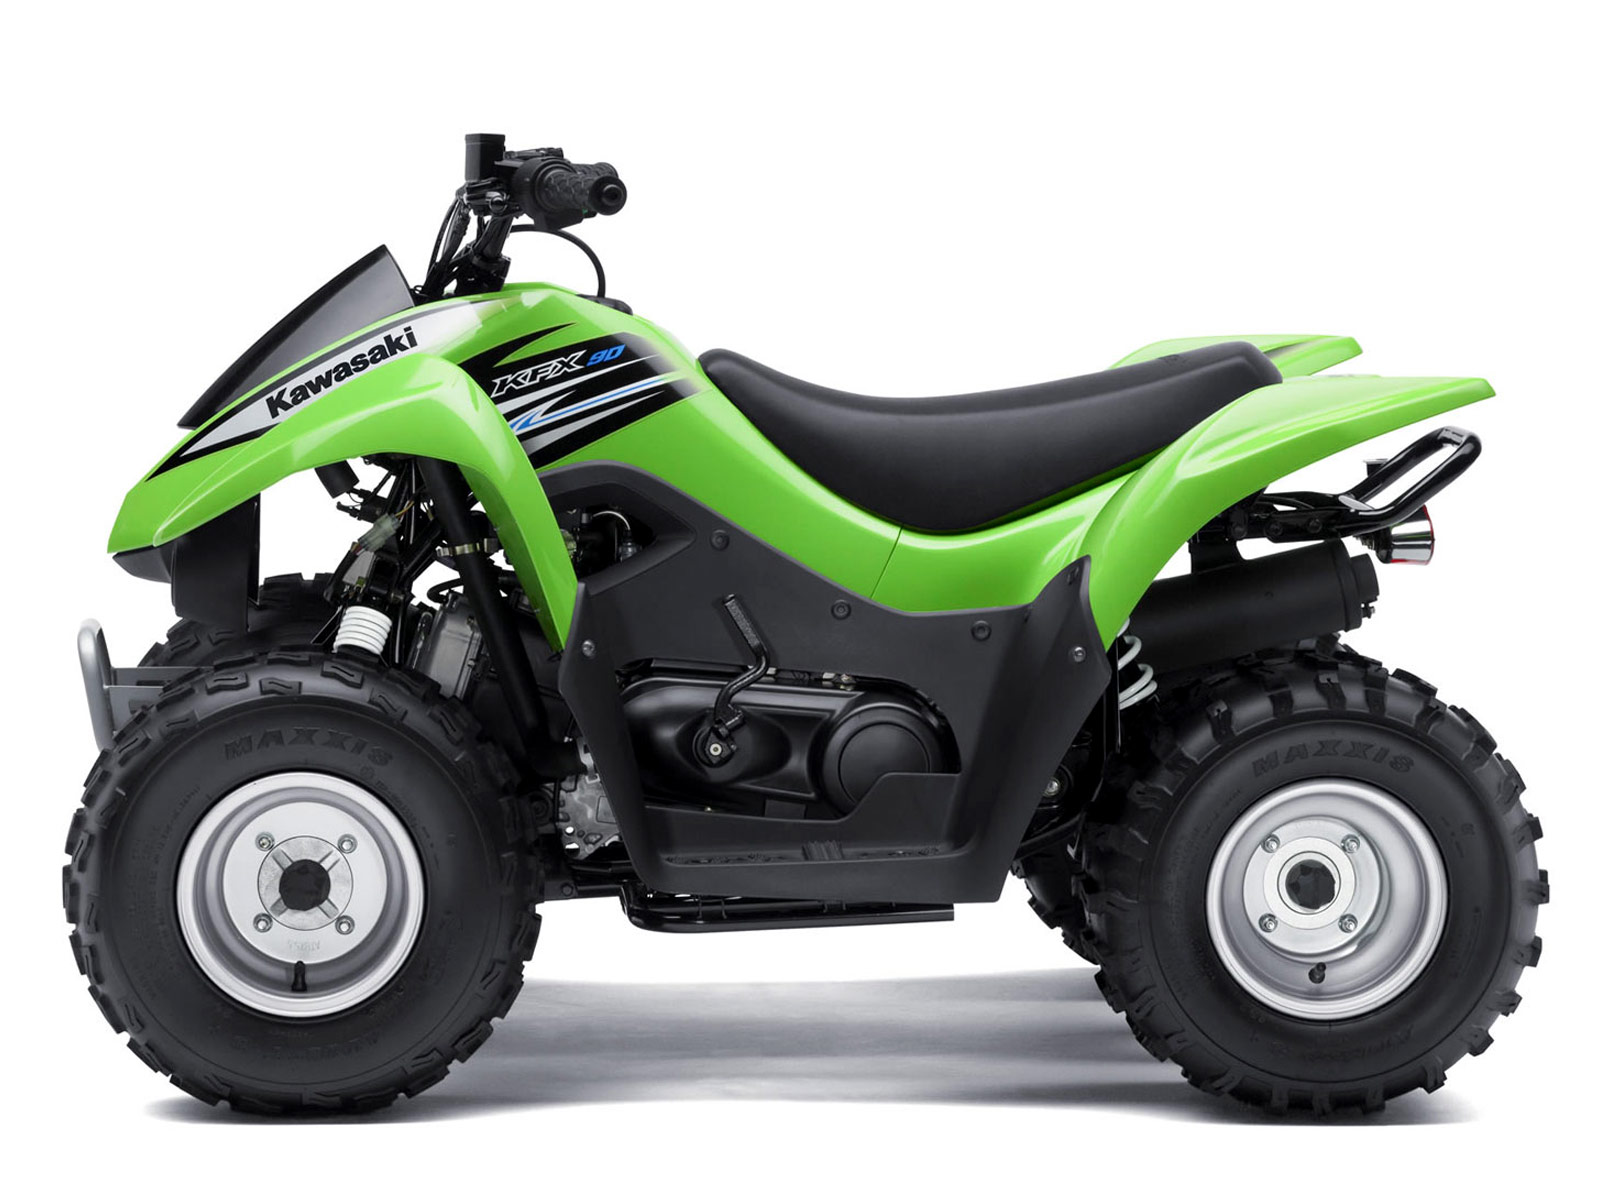 2011 kawasaki kfx 90 pictures atv accident lawyers info. Black Bedroom Furniture Sets. Home Design Ideas